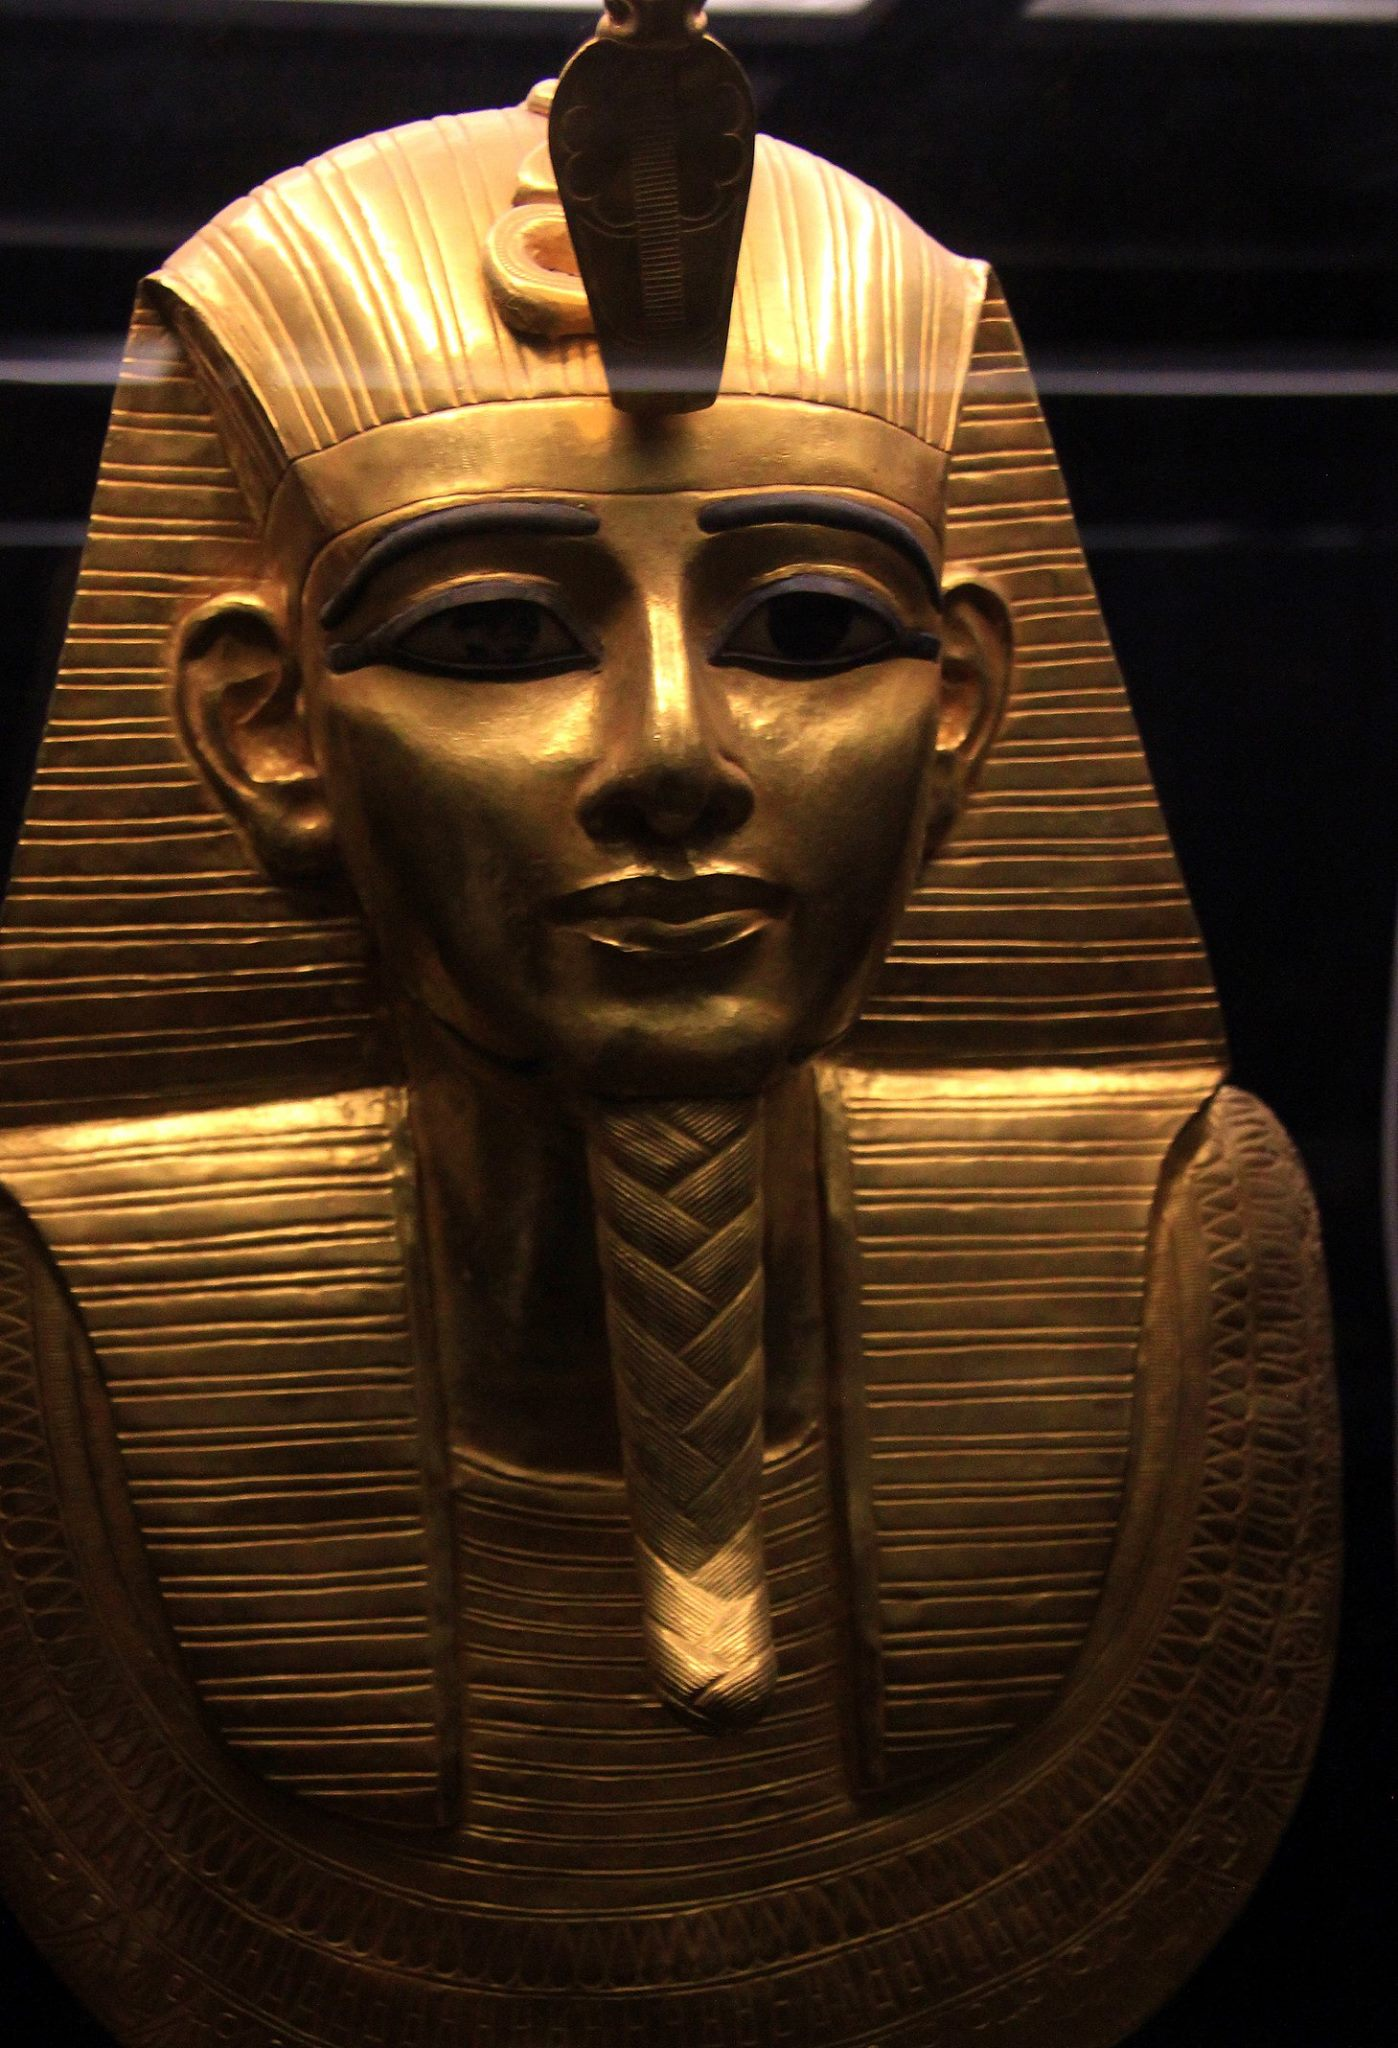 The egyptian museum in cairo is must visit in egypt itinerary